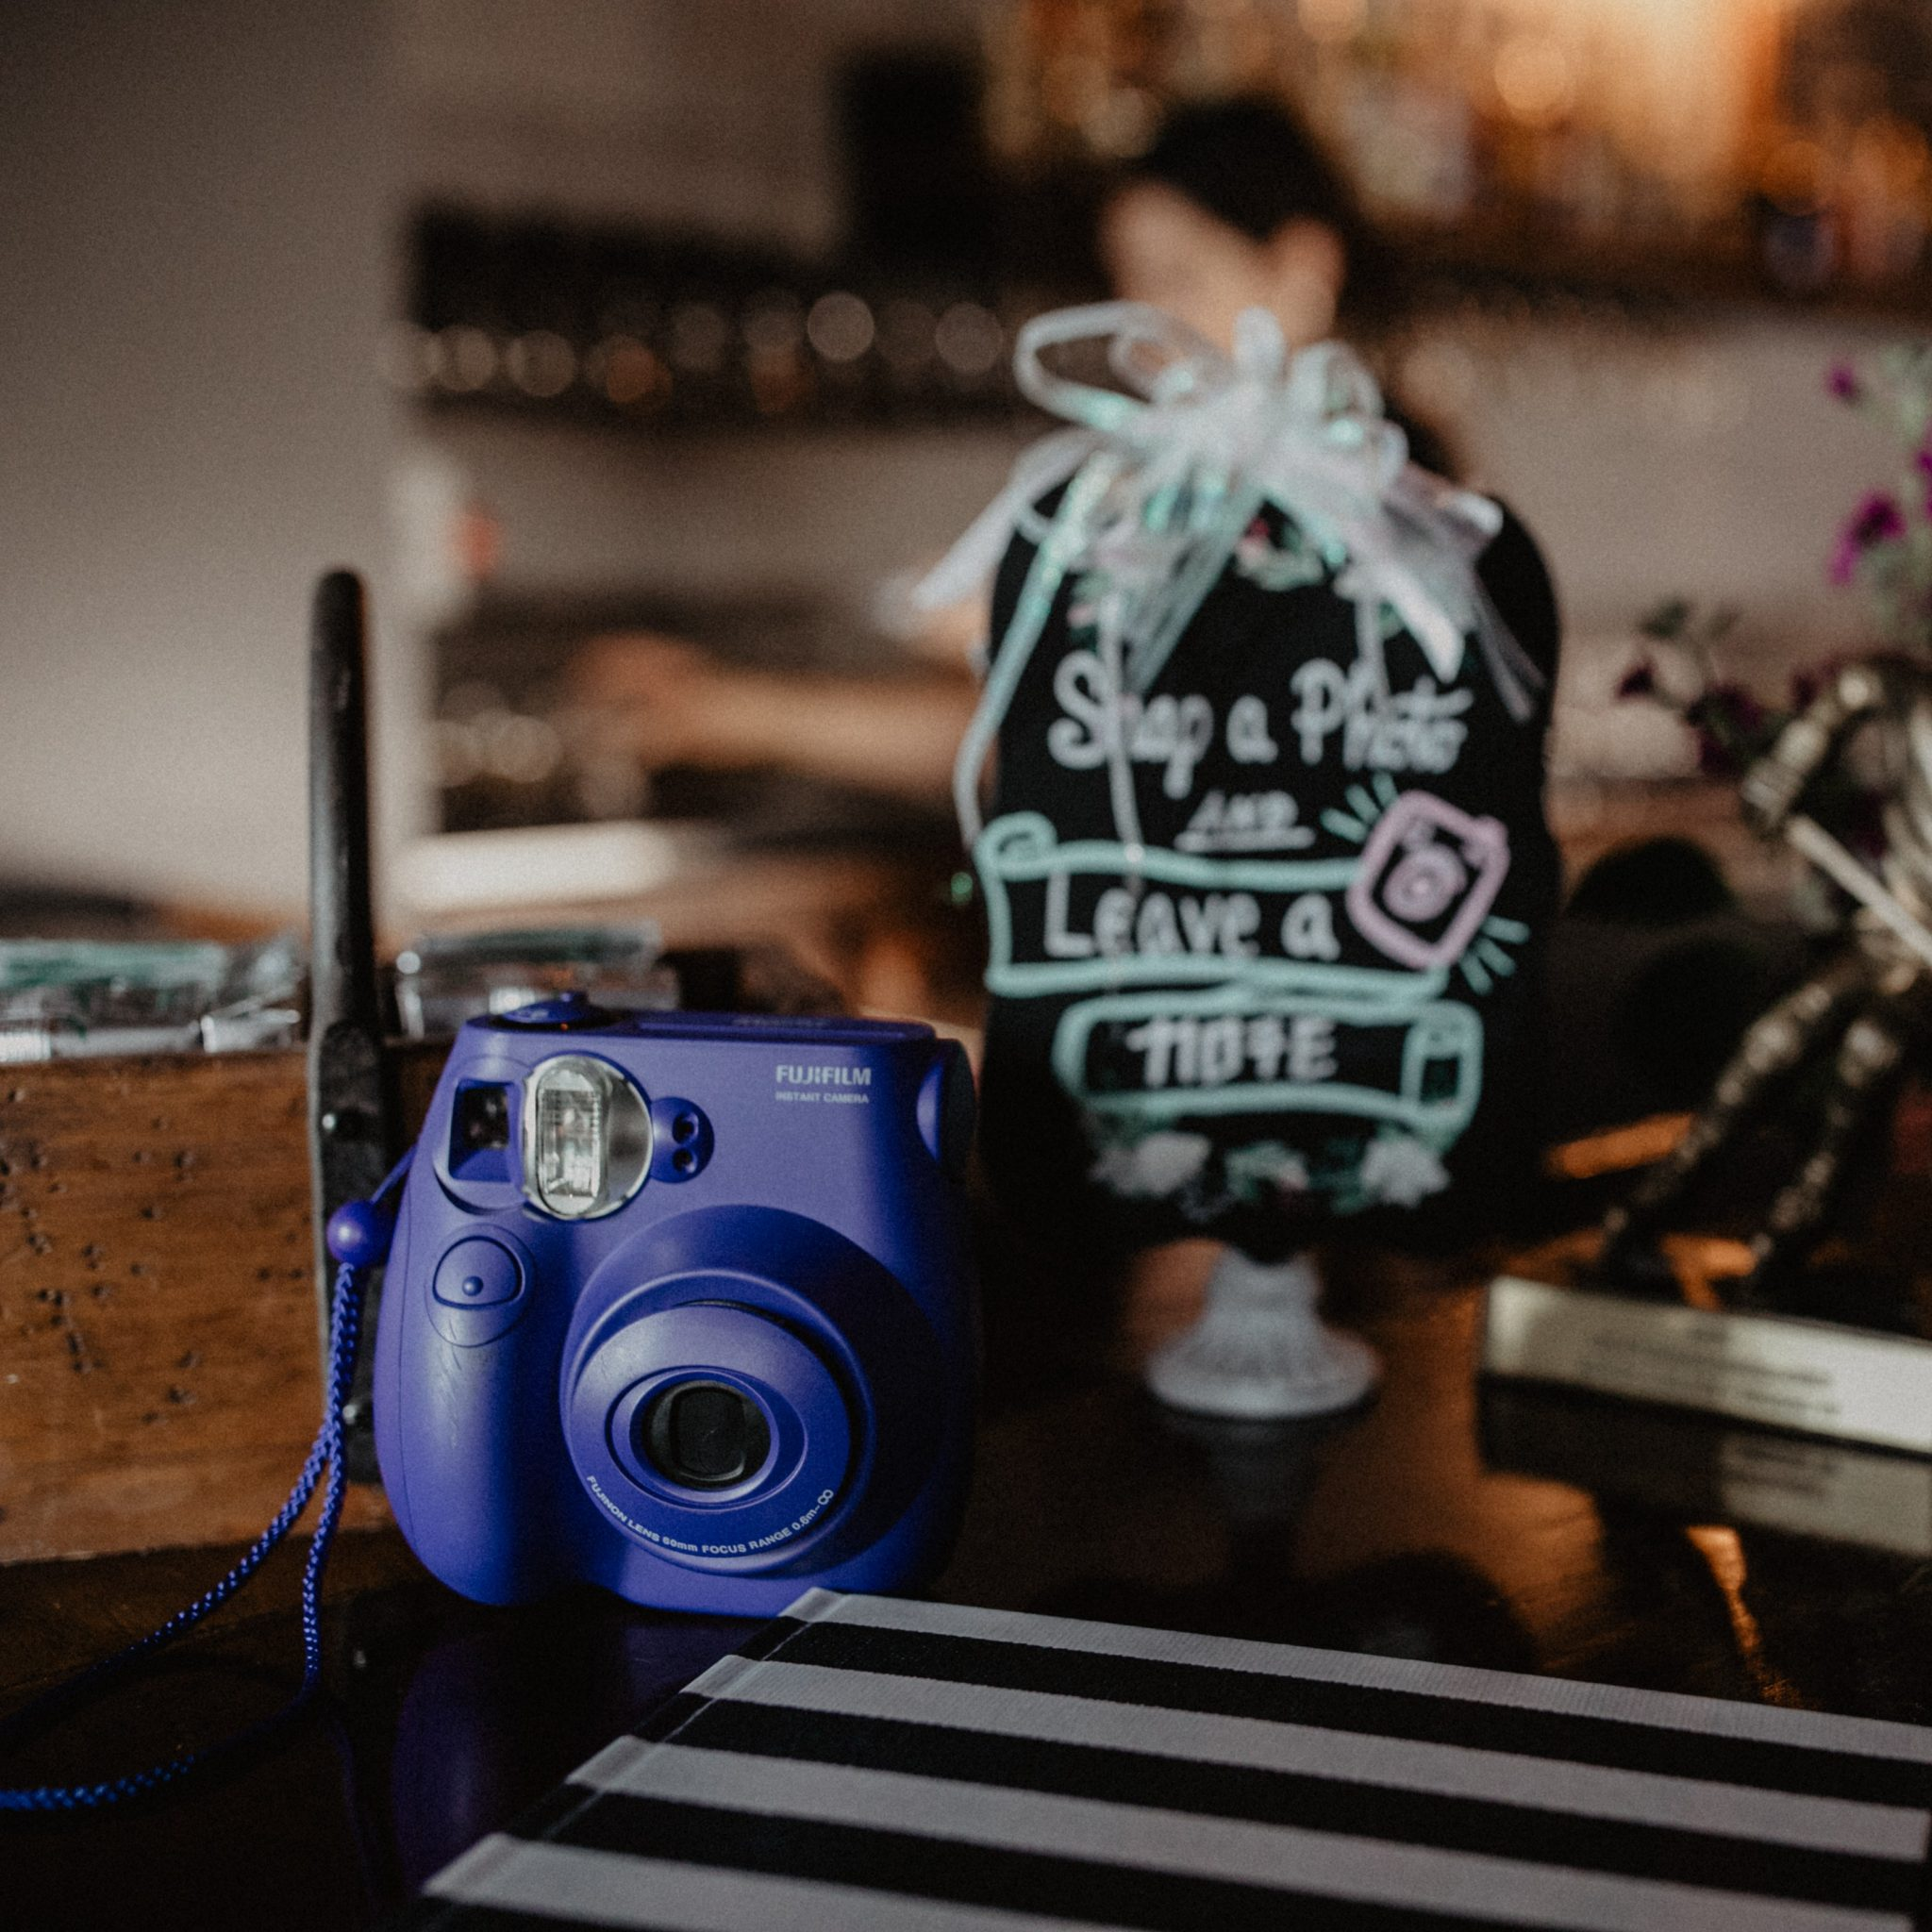 Lulu xPress wedding guest book with Instax film camera at Southern wedding reception